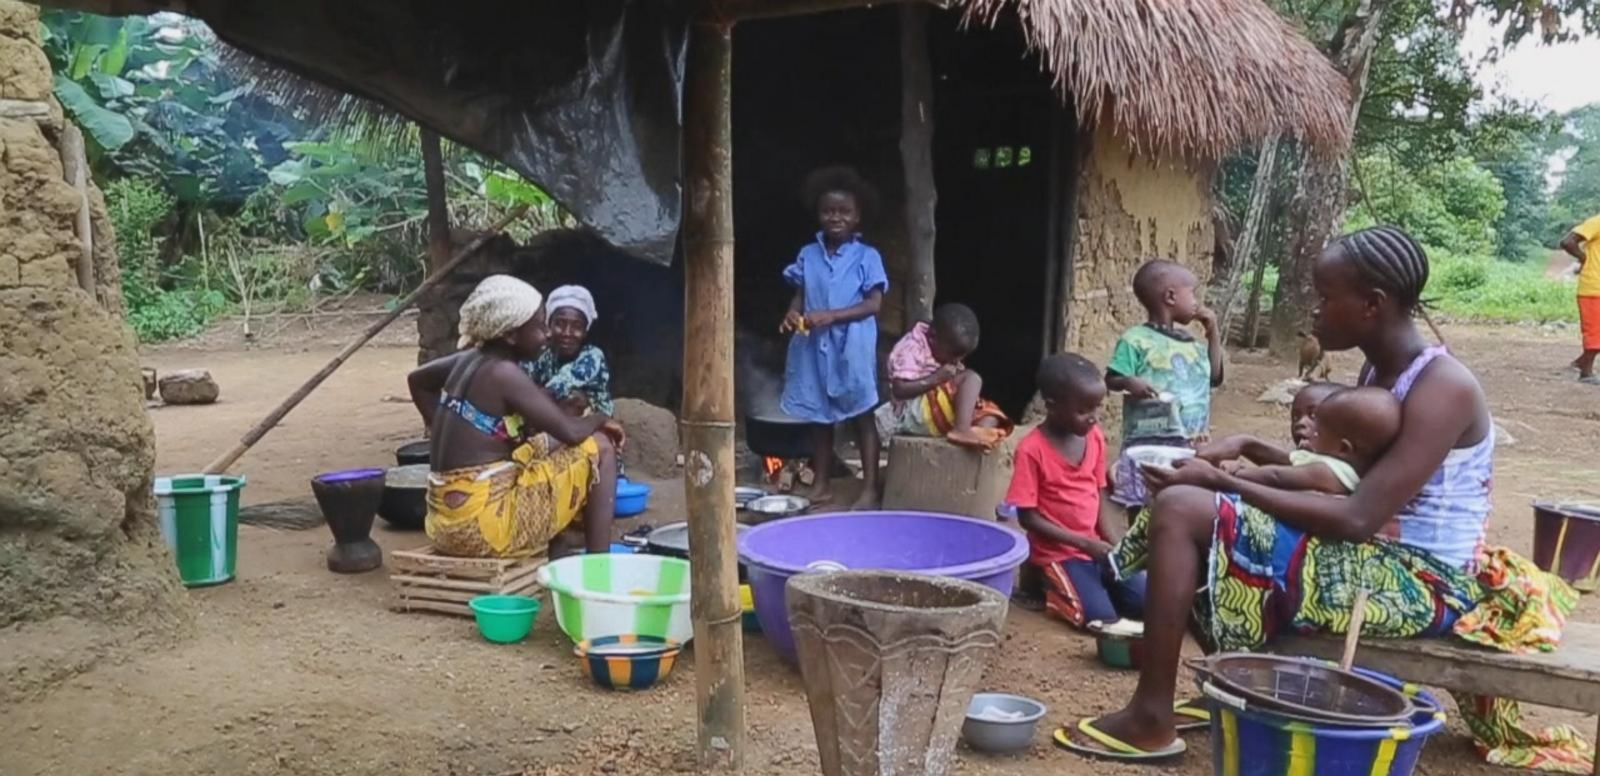 VIDEO: Liberias Remote Villages Are the New Frontlines of the Ebola Outbreak